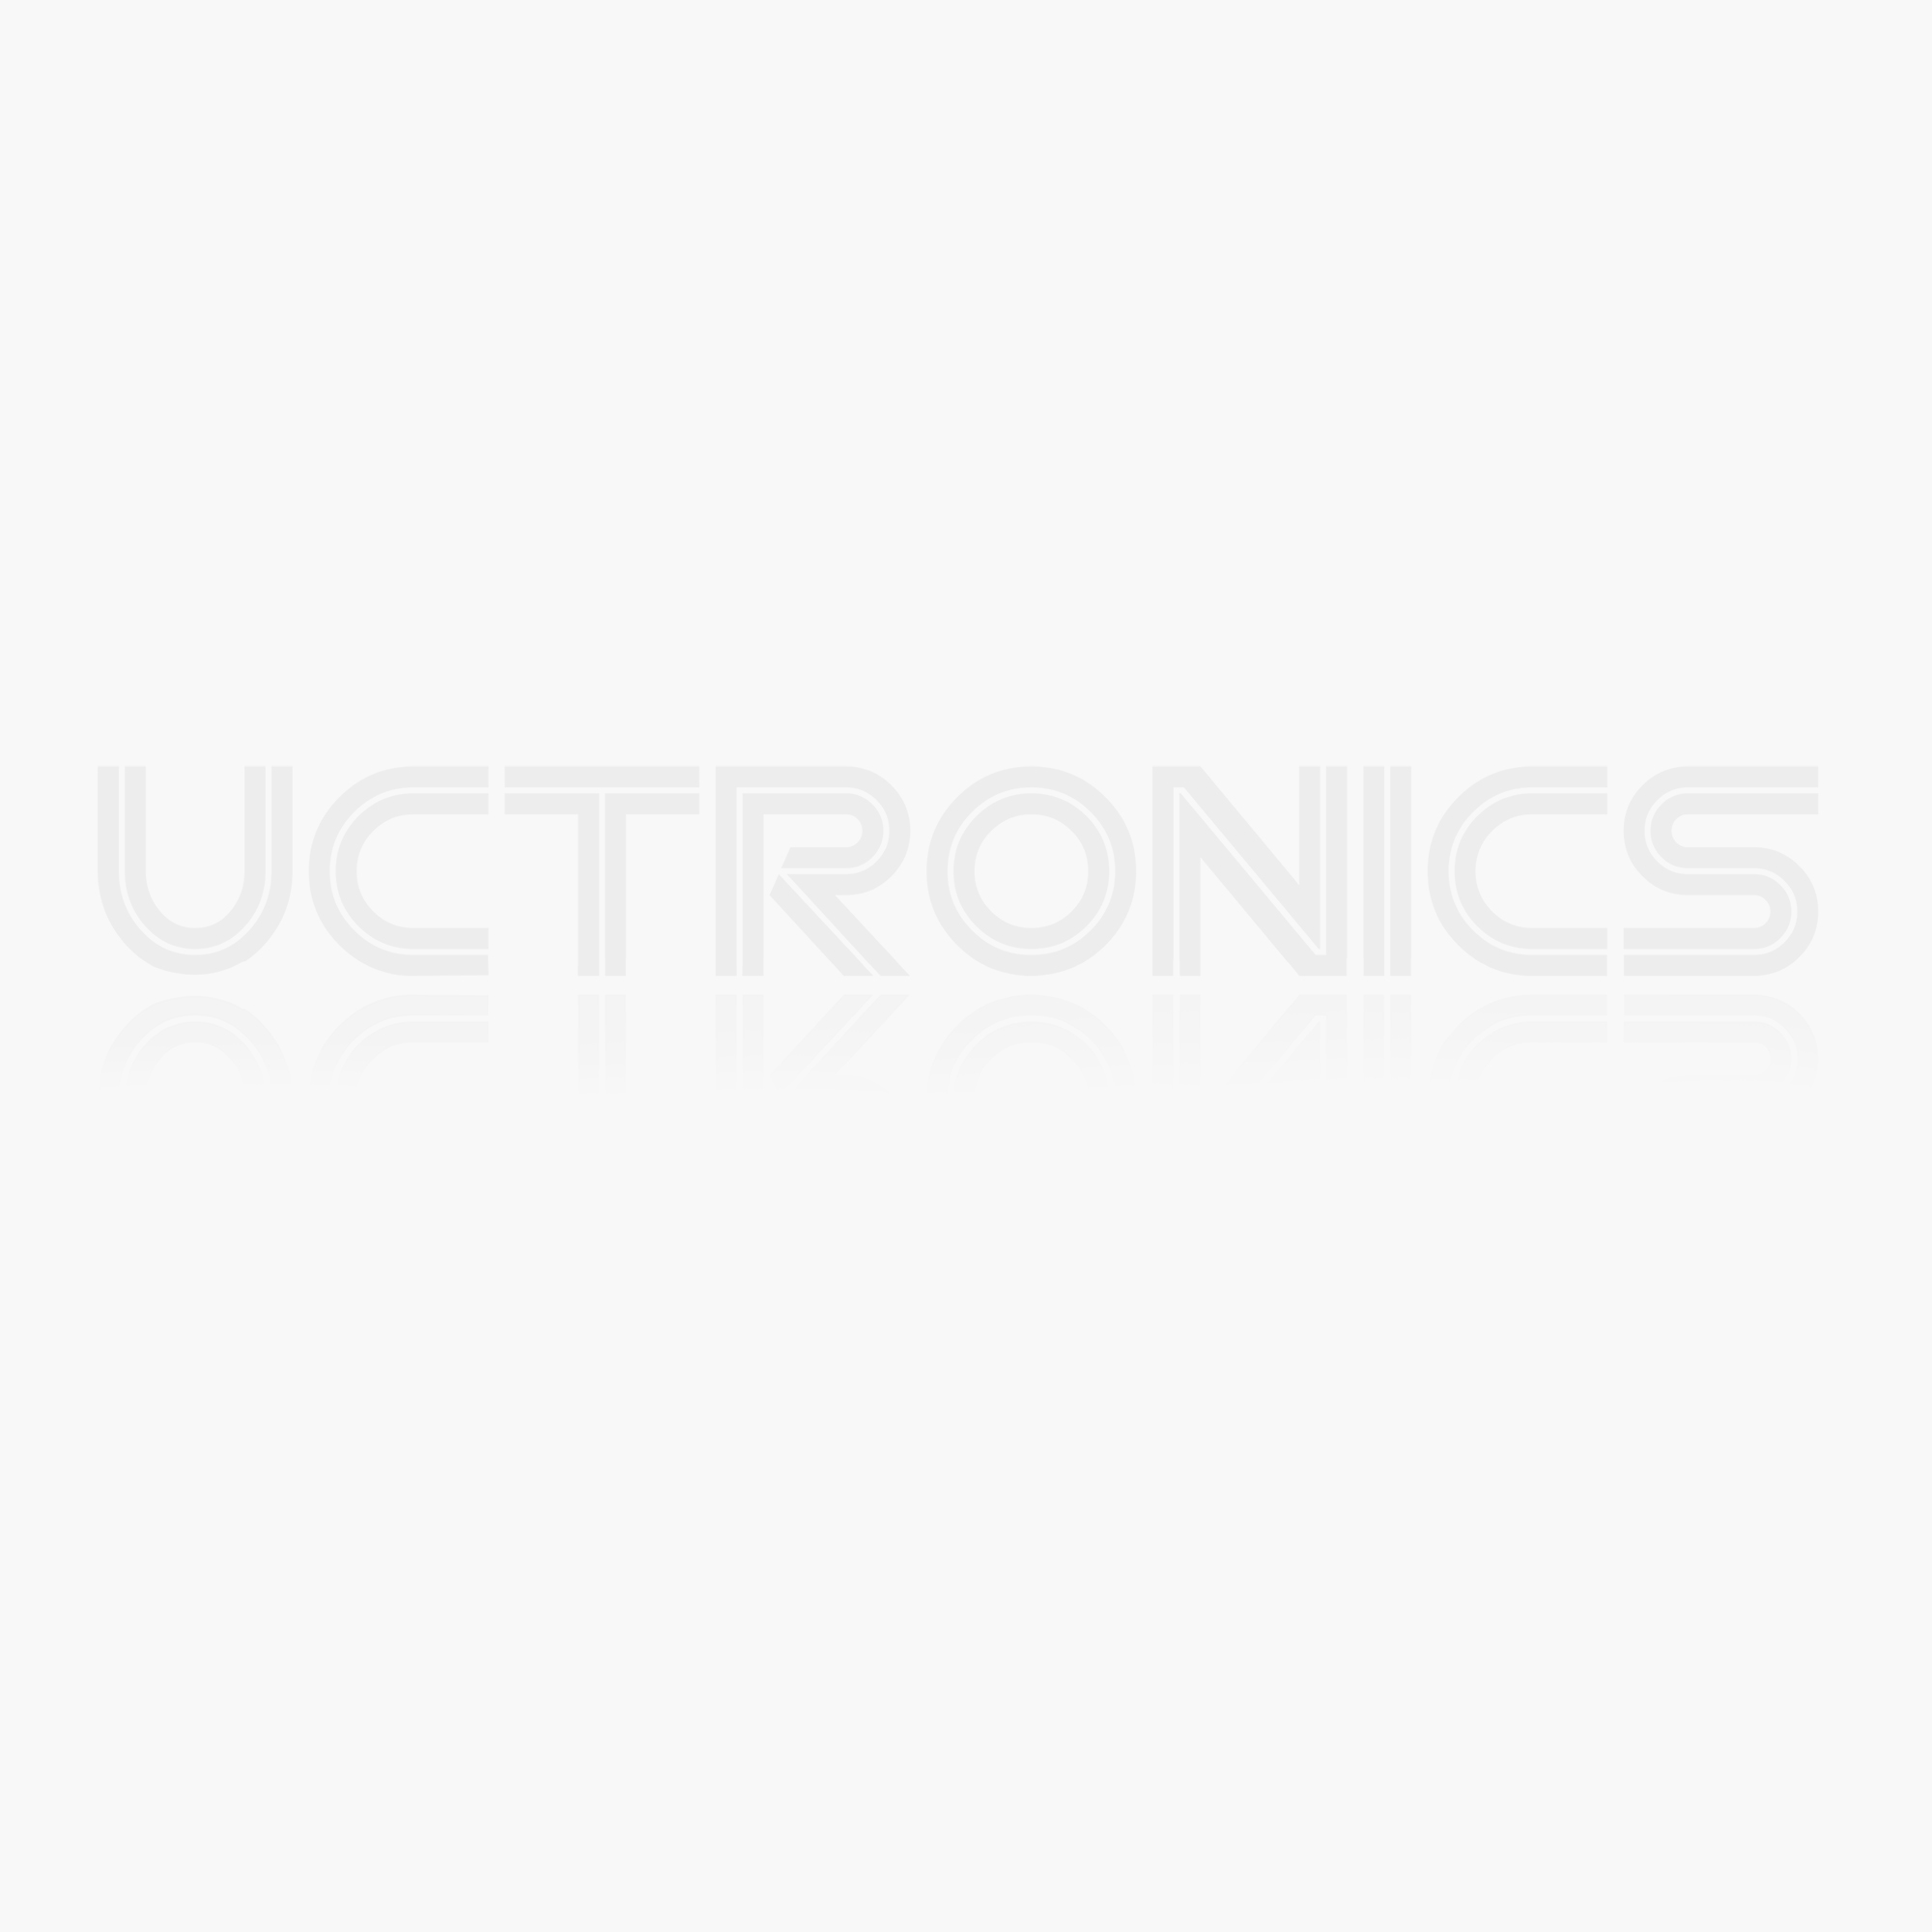 Uctronics smart robot car kit for arduino automatic for Micro servo motor arduino